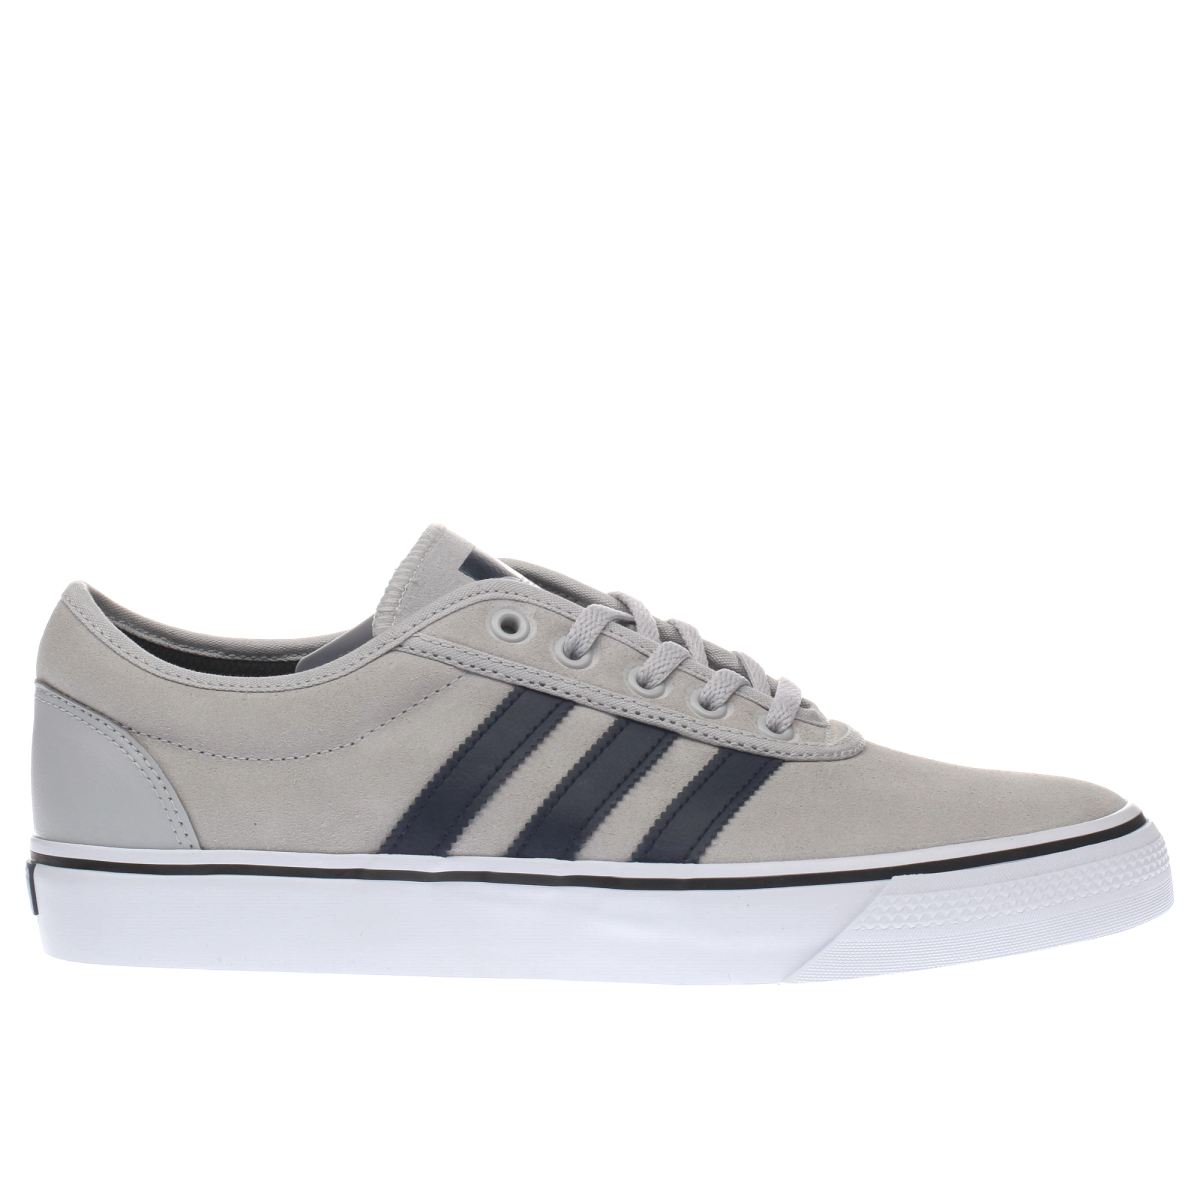 adidas light grey adiease trainers